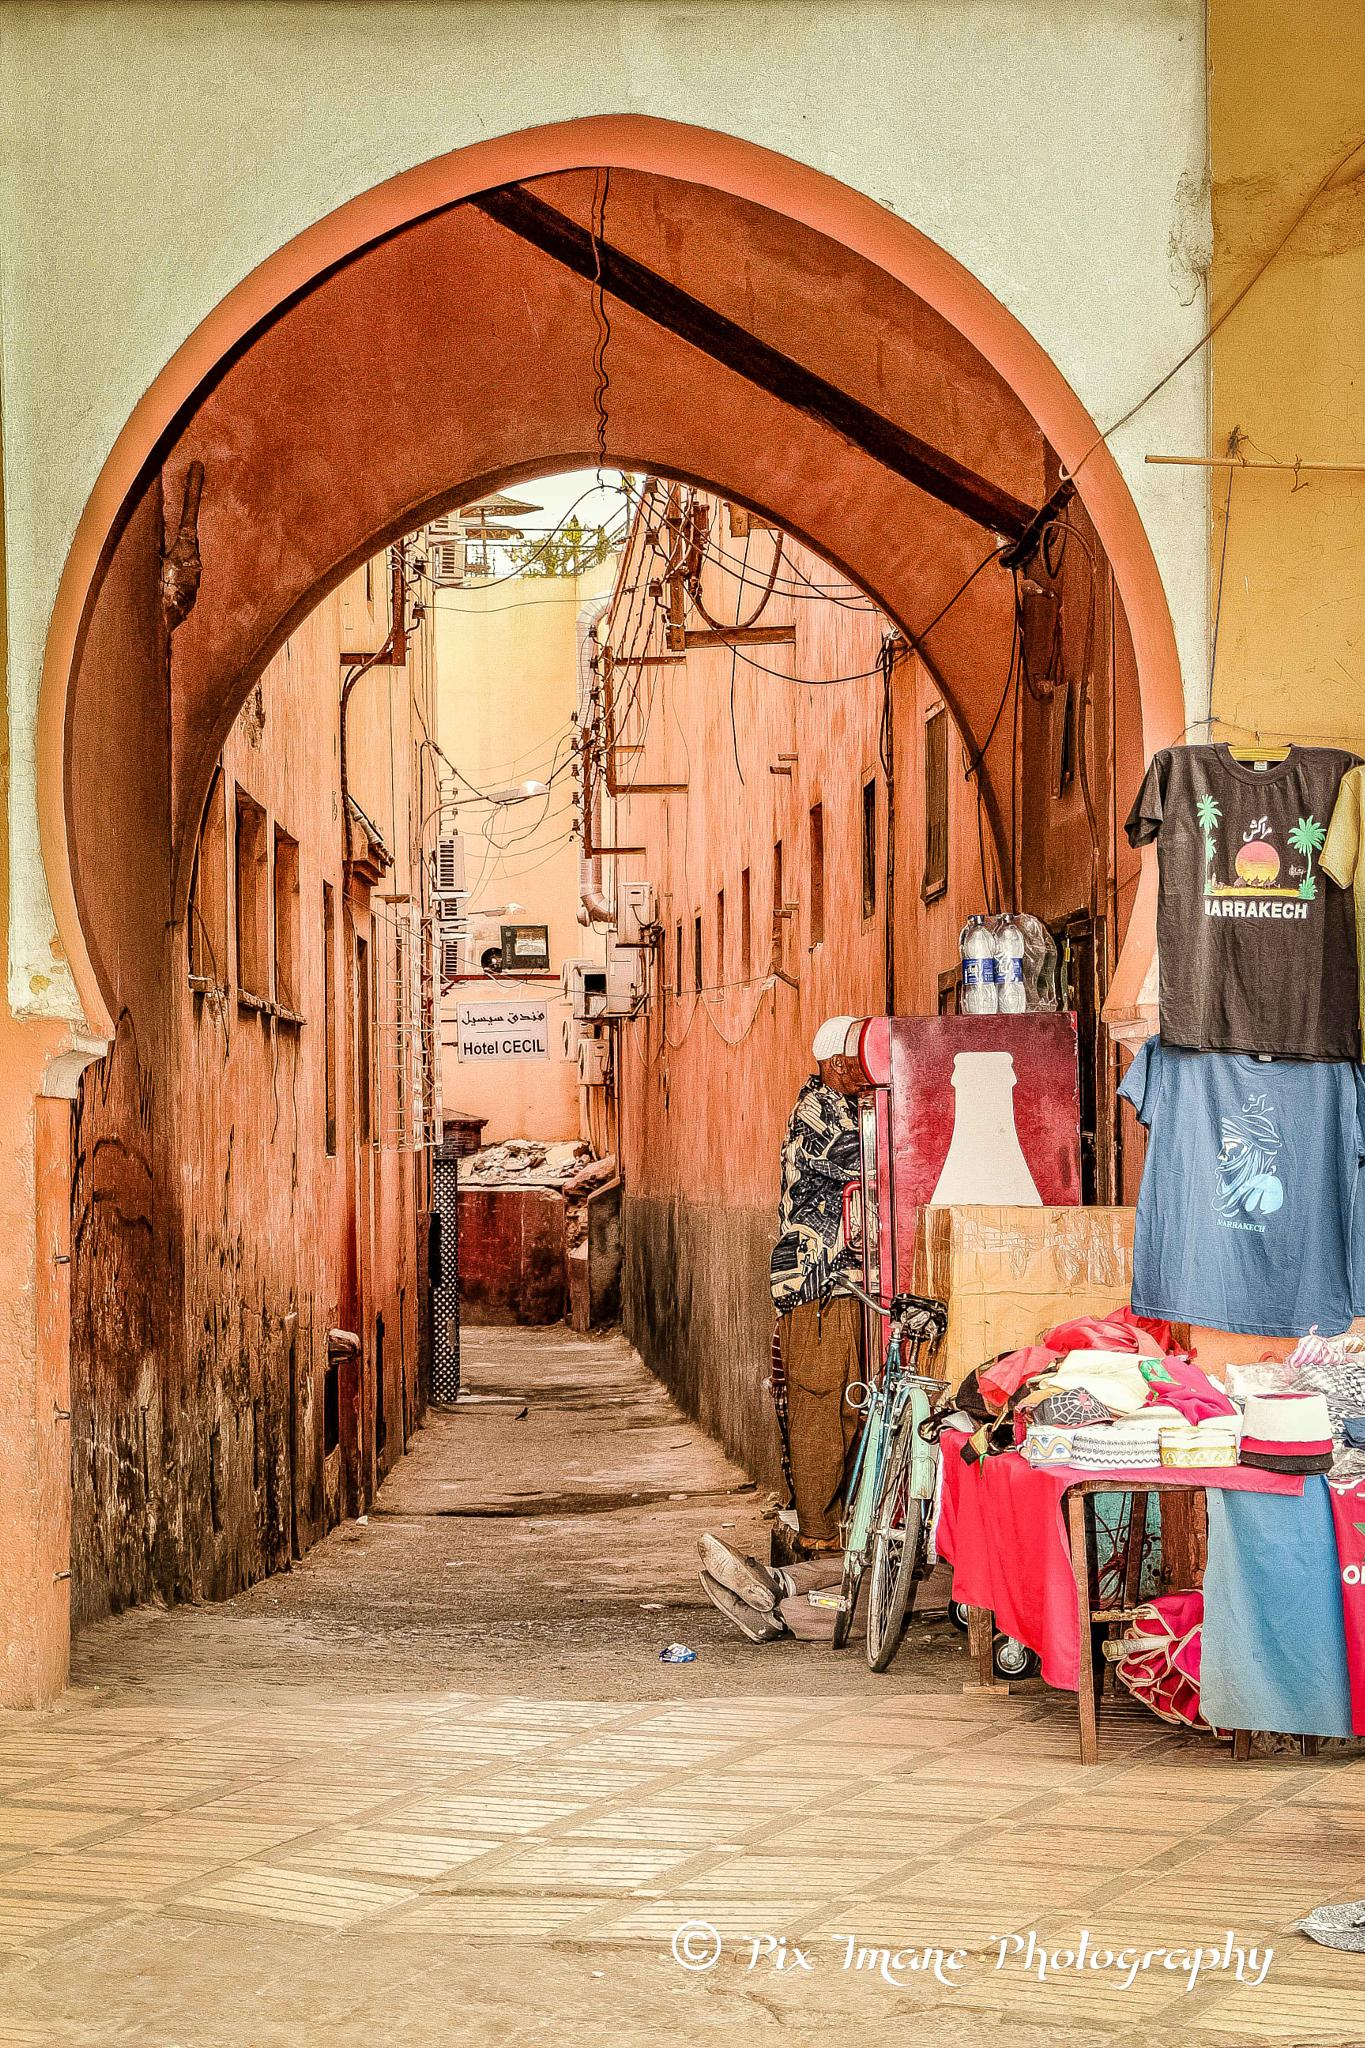 Medina street in Marrakech Morocco by PixImane Photography